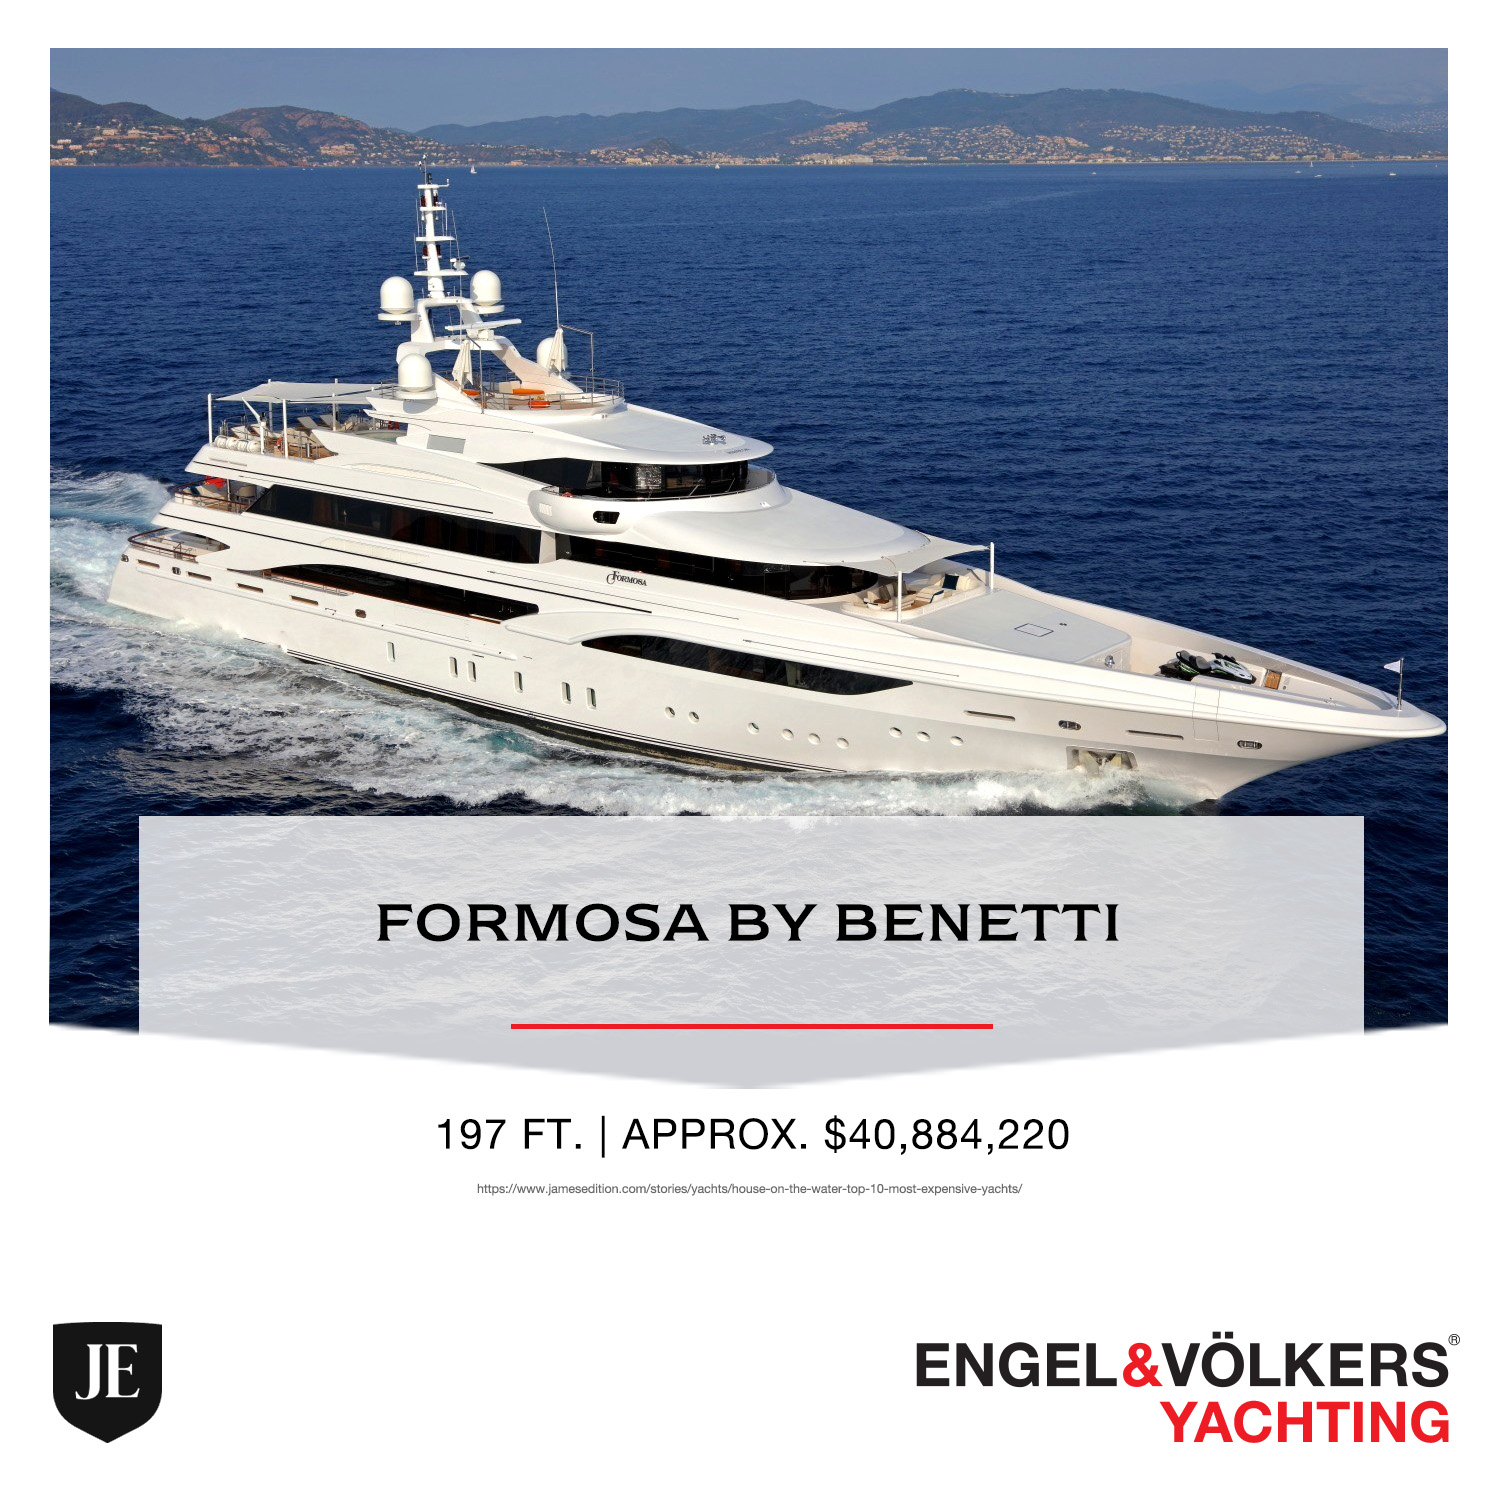 Formosa by Benetti YACHT ENGEL & VOLKERS YACHTING